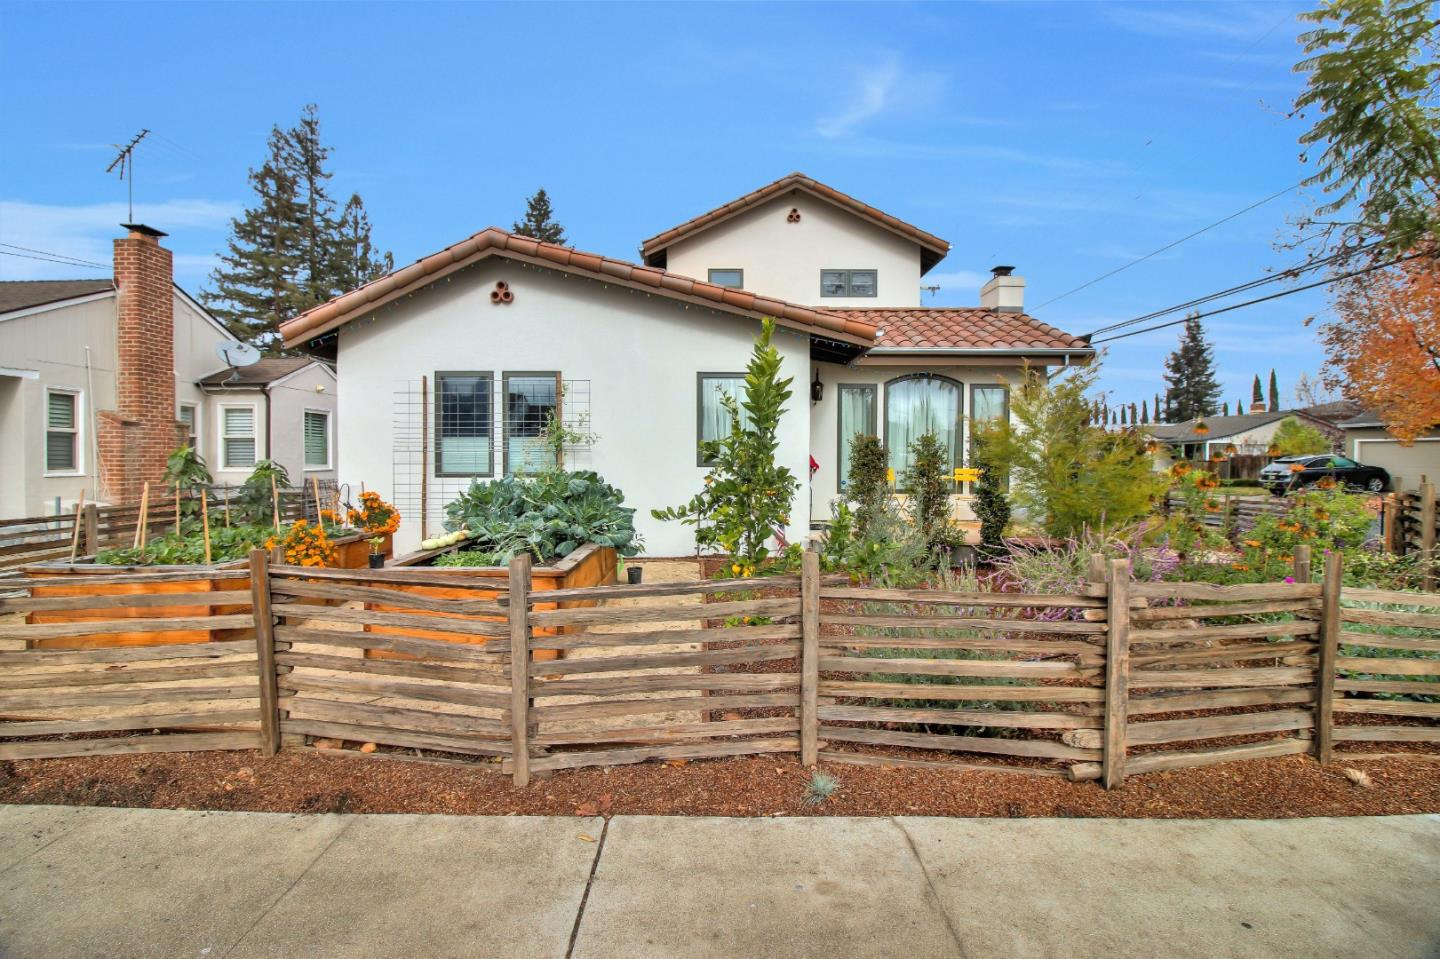 313 W CAMPBELL AVE, CAMPBELL, CA 95008